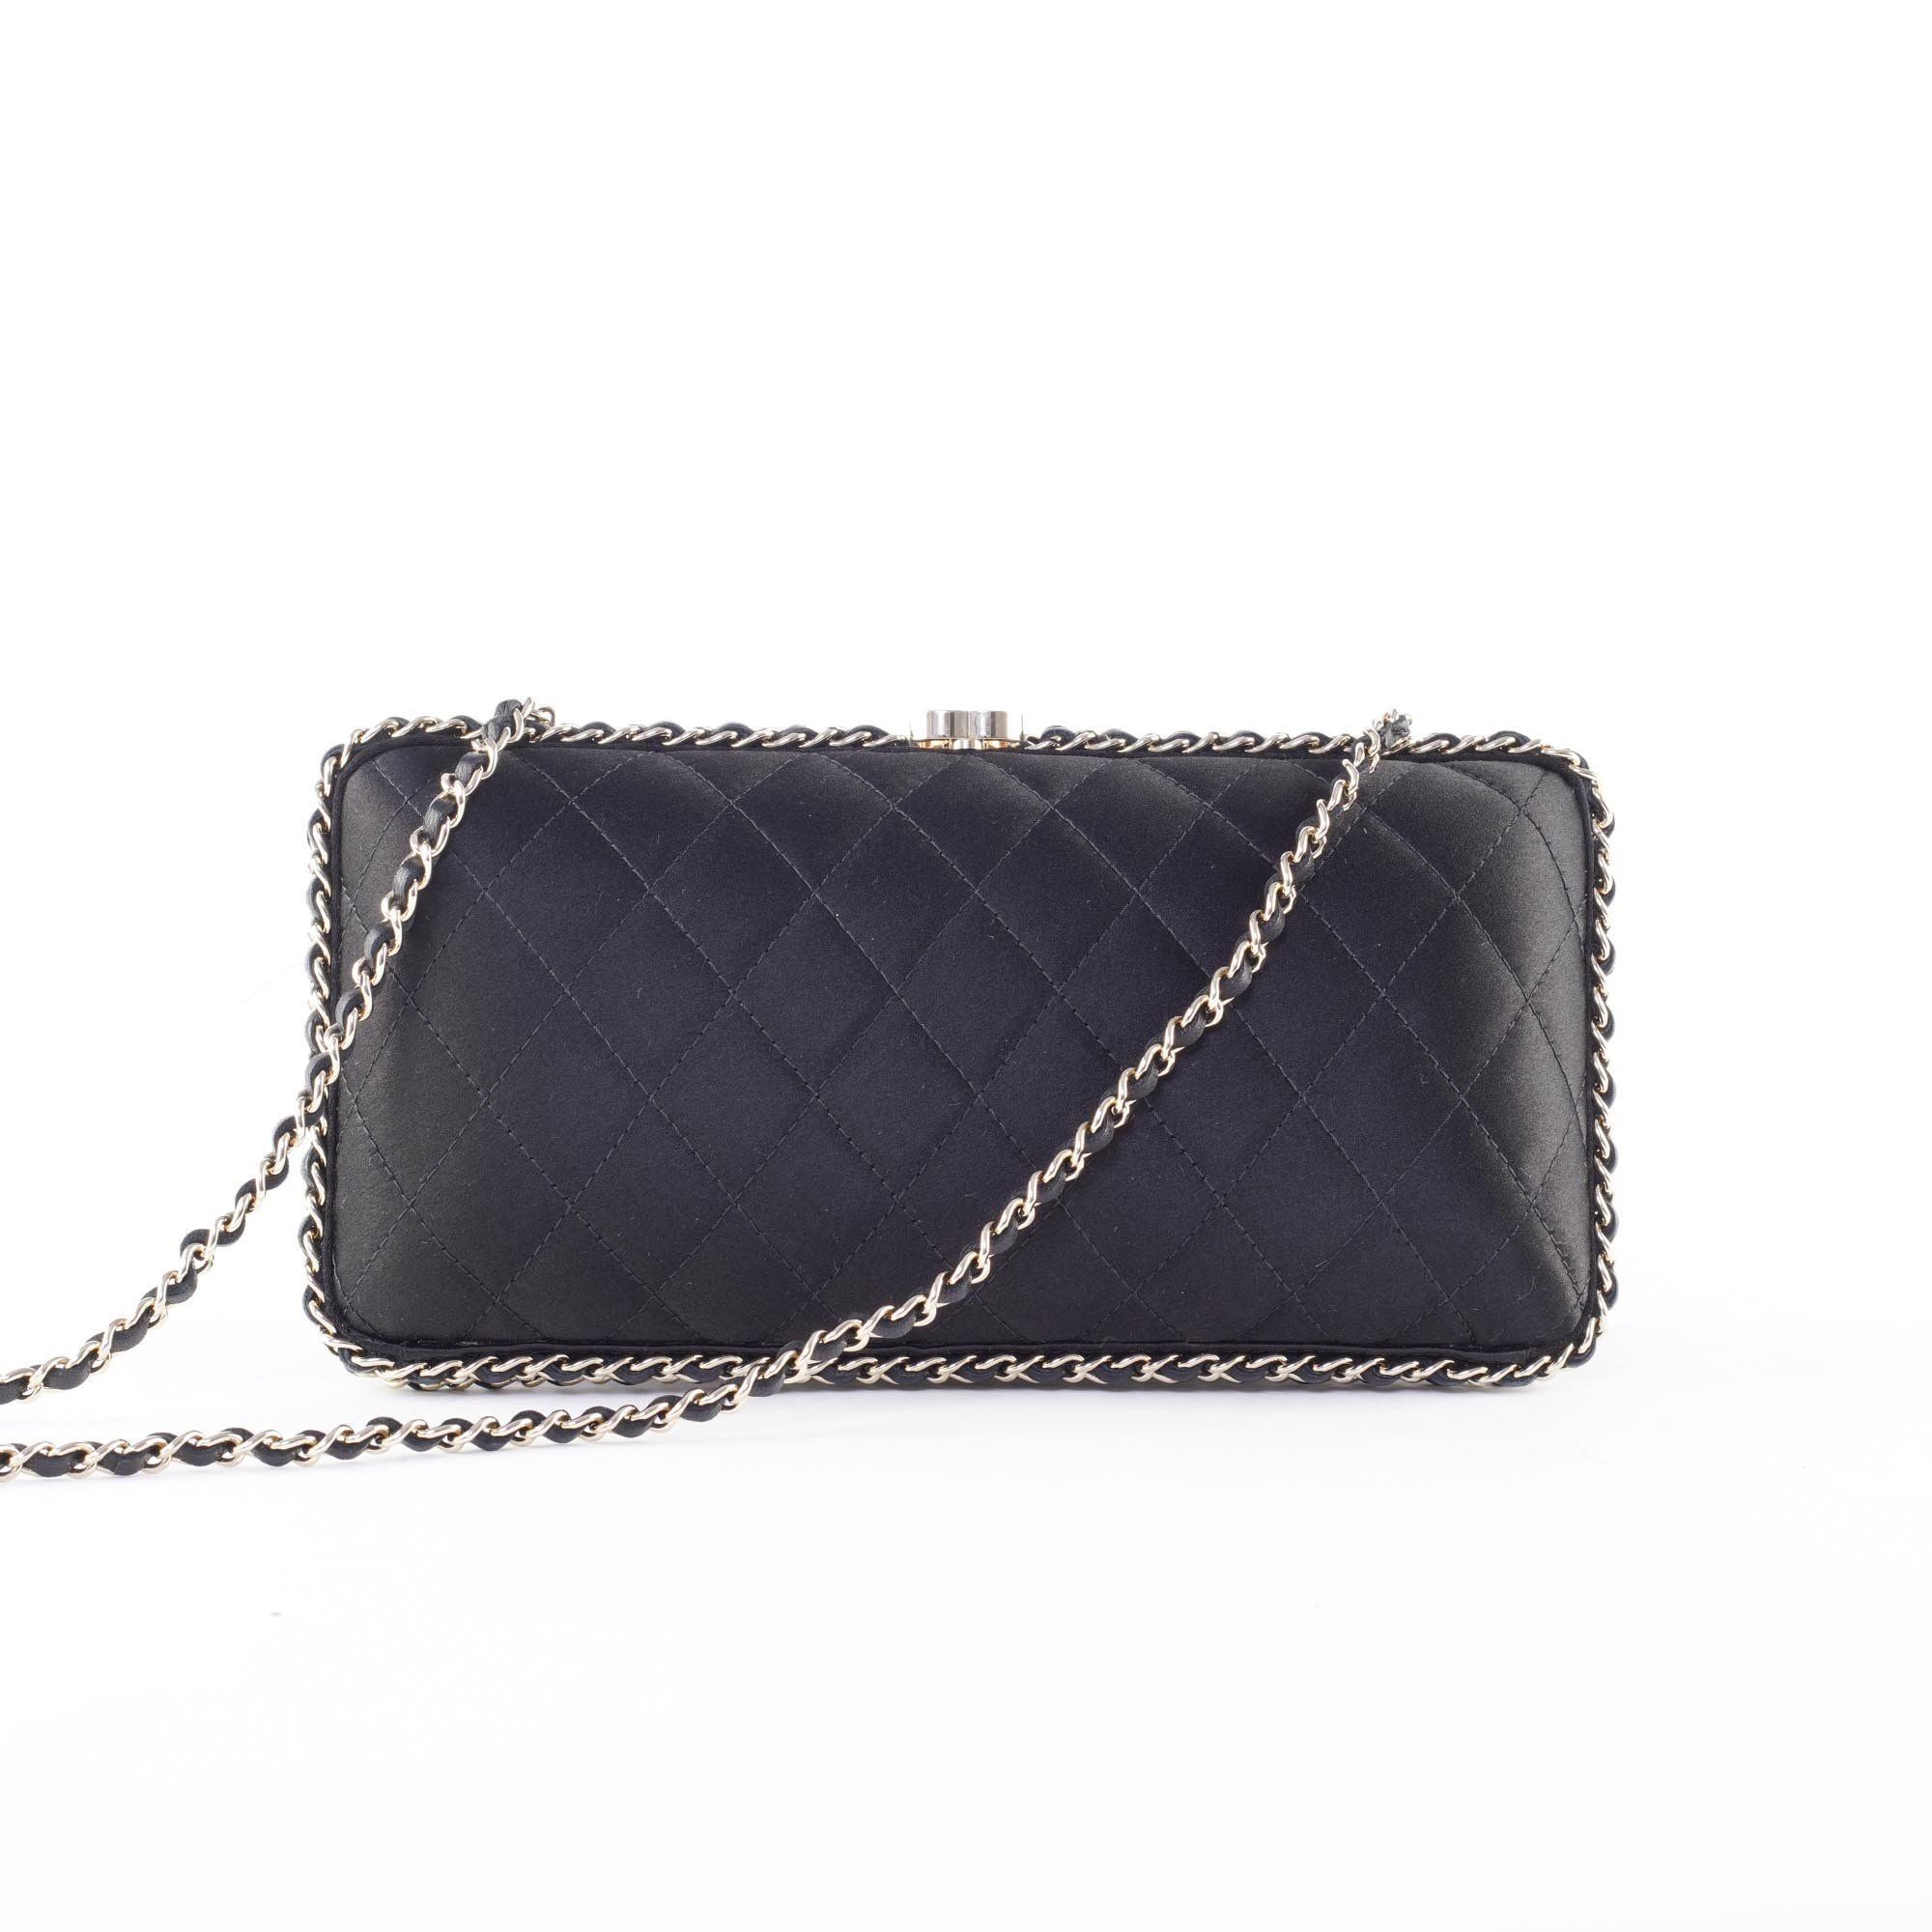 Chanel Black Quilted Satin Chain Box Clutch Bag